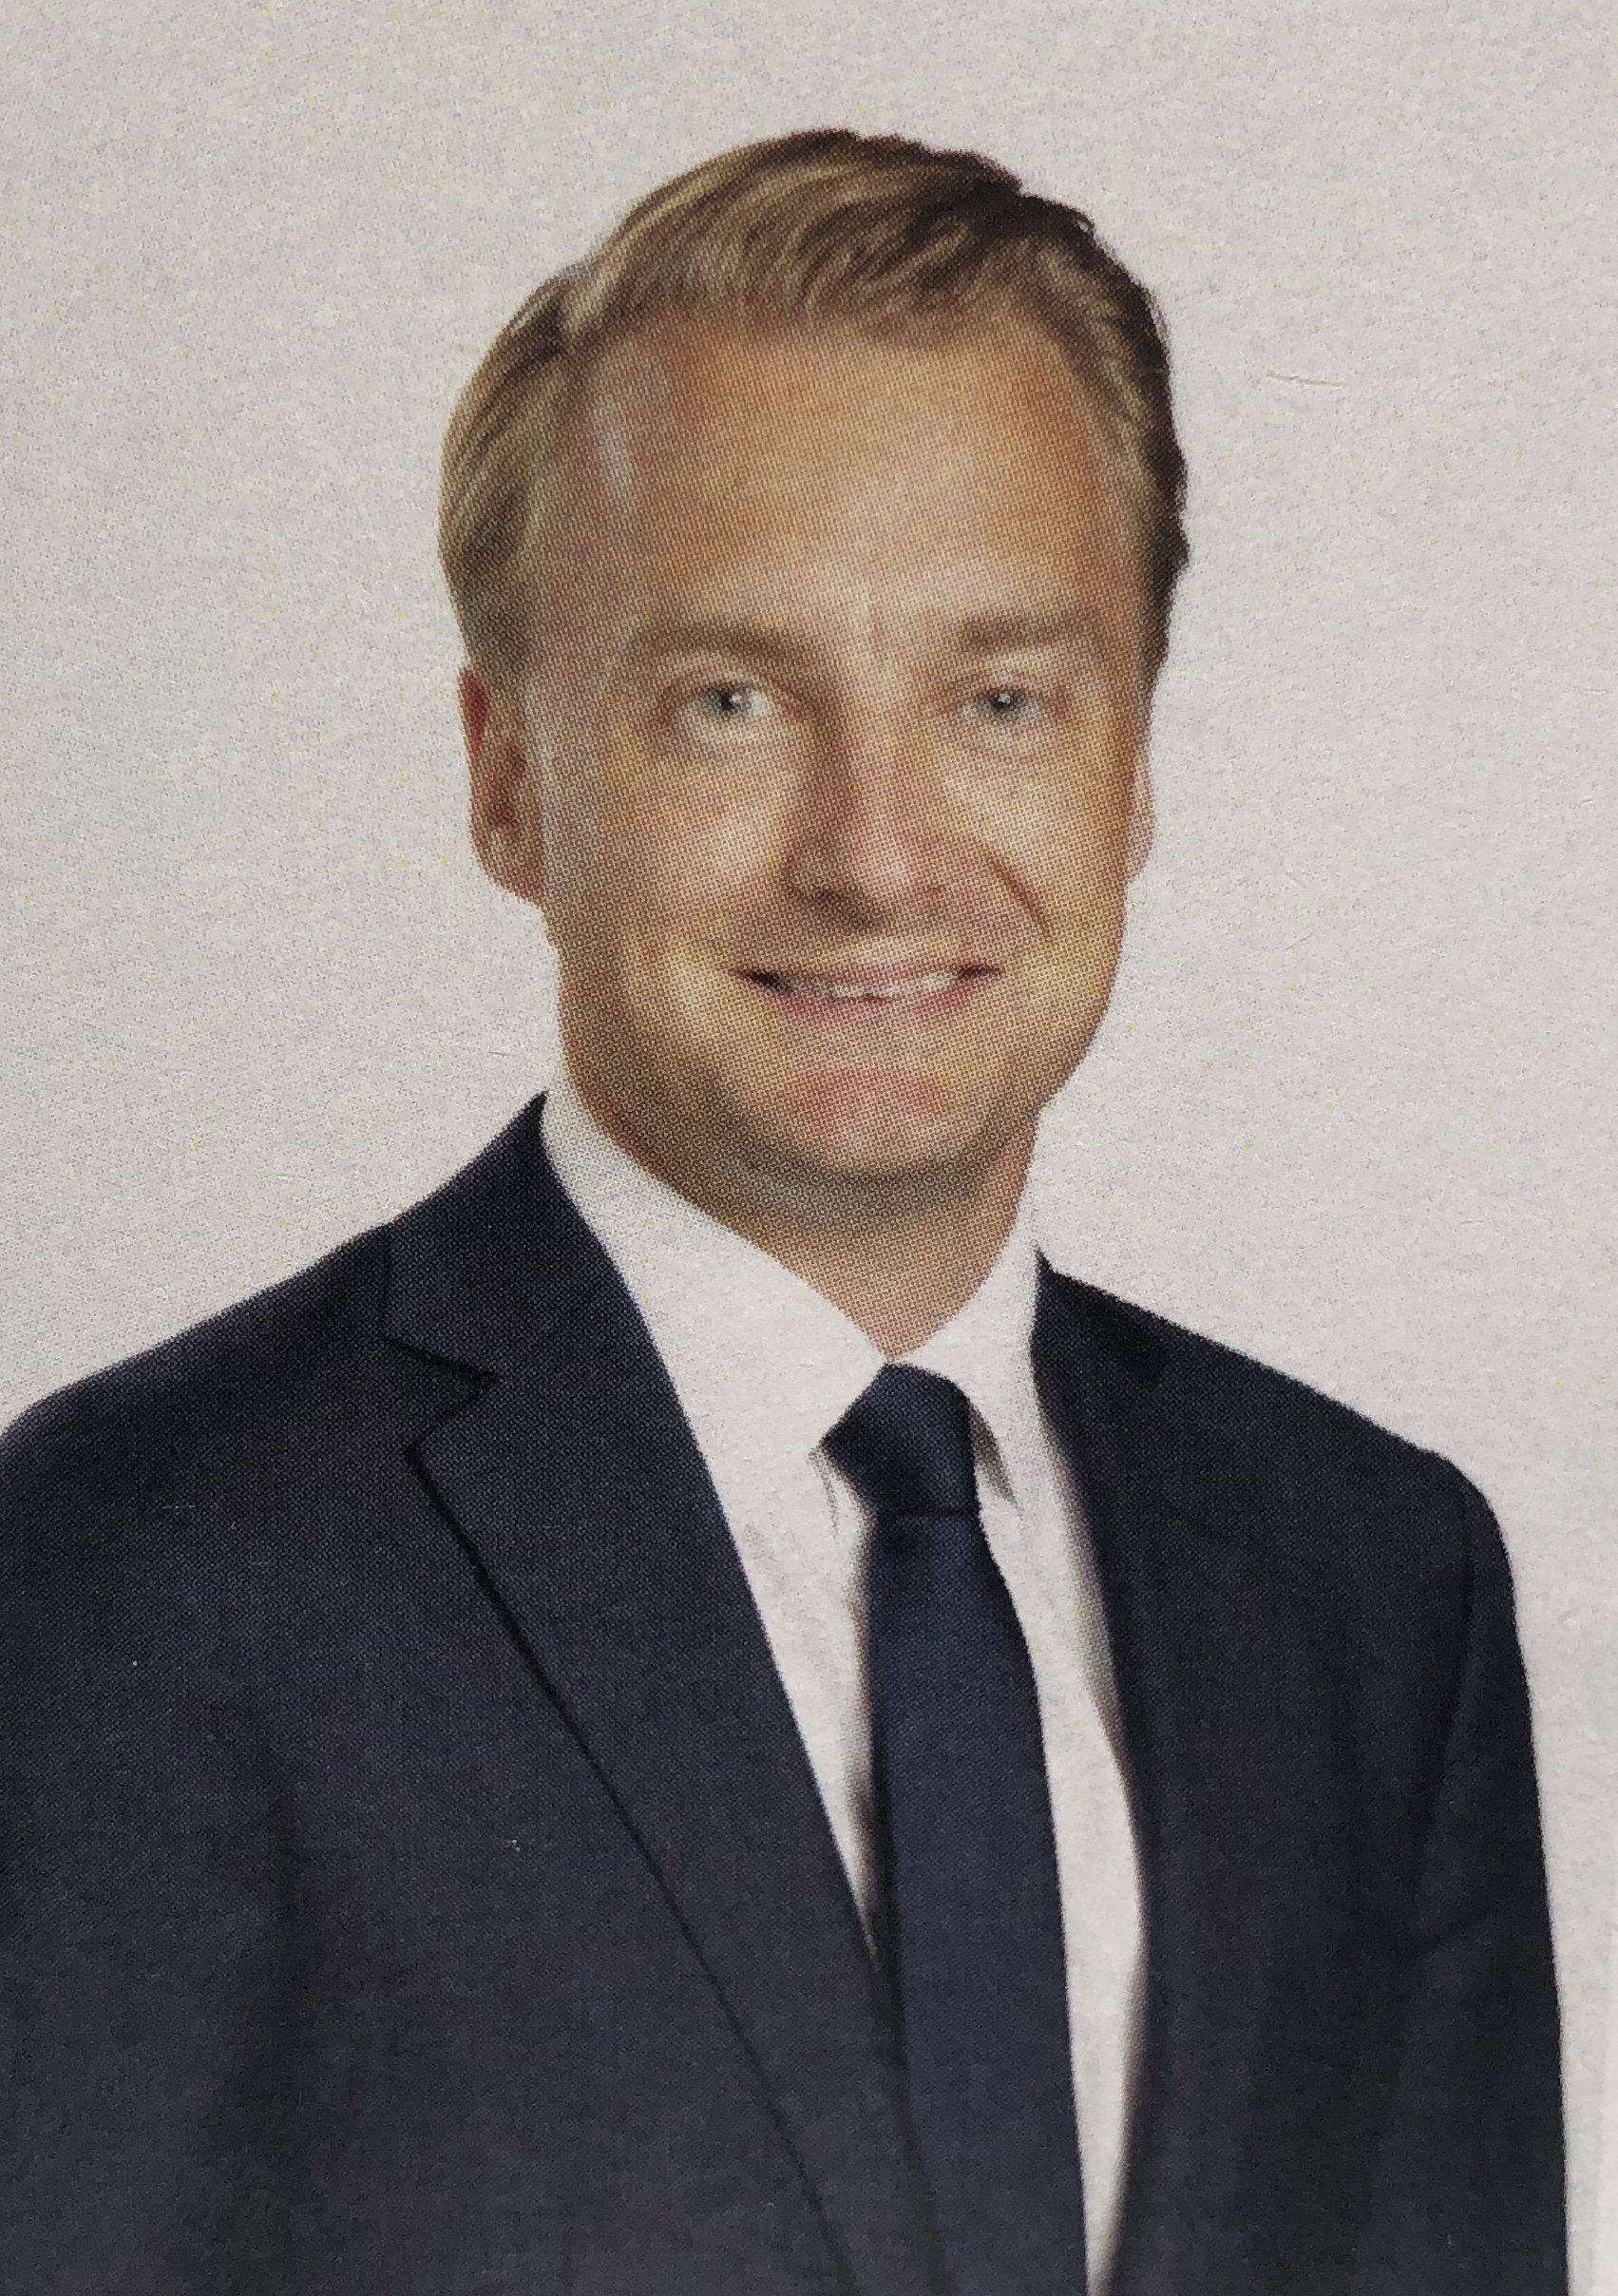 James Griffin MP, Member for Manly